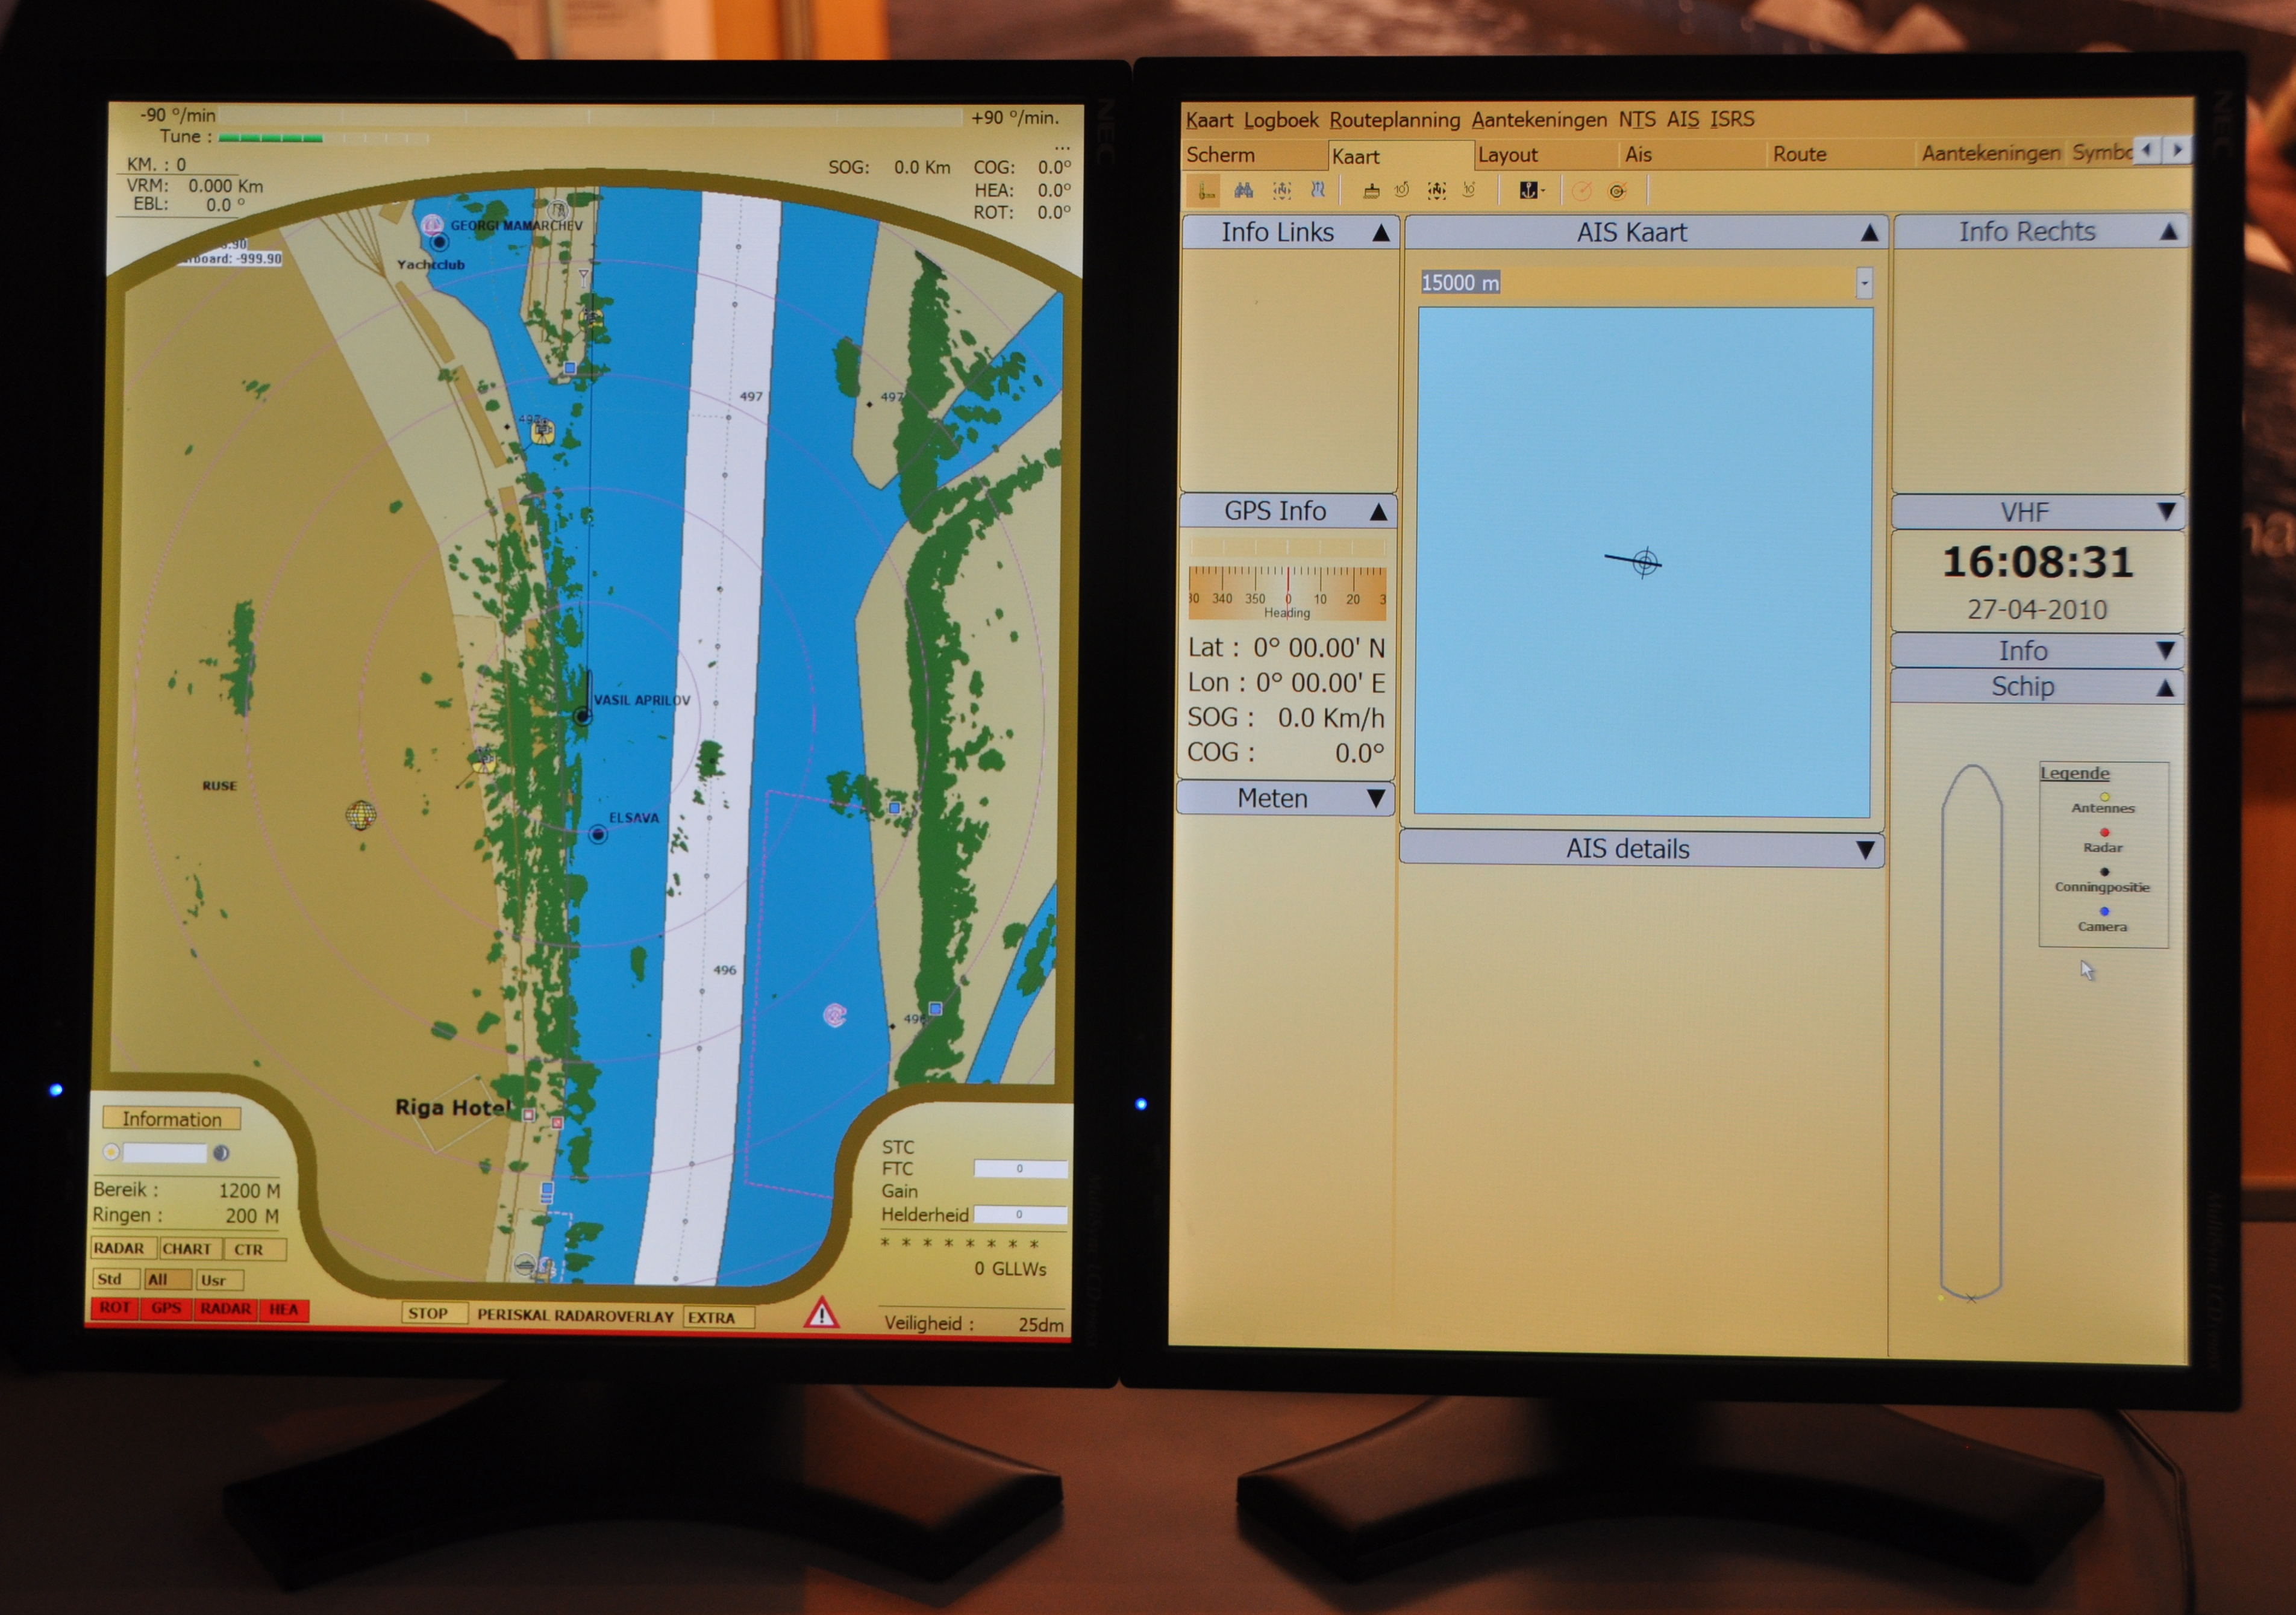 Charts In Powerpoint 2010: Electronic nautical chart of Periscal Tresco (02).JPG ,Chart